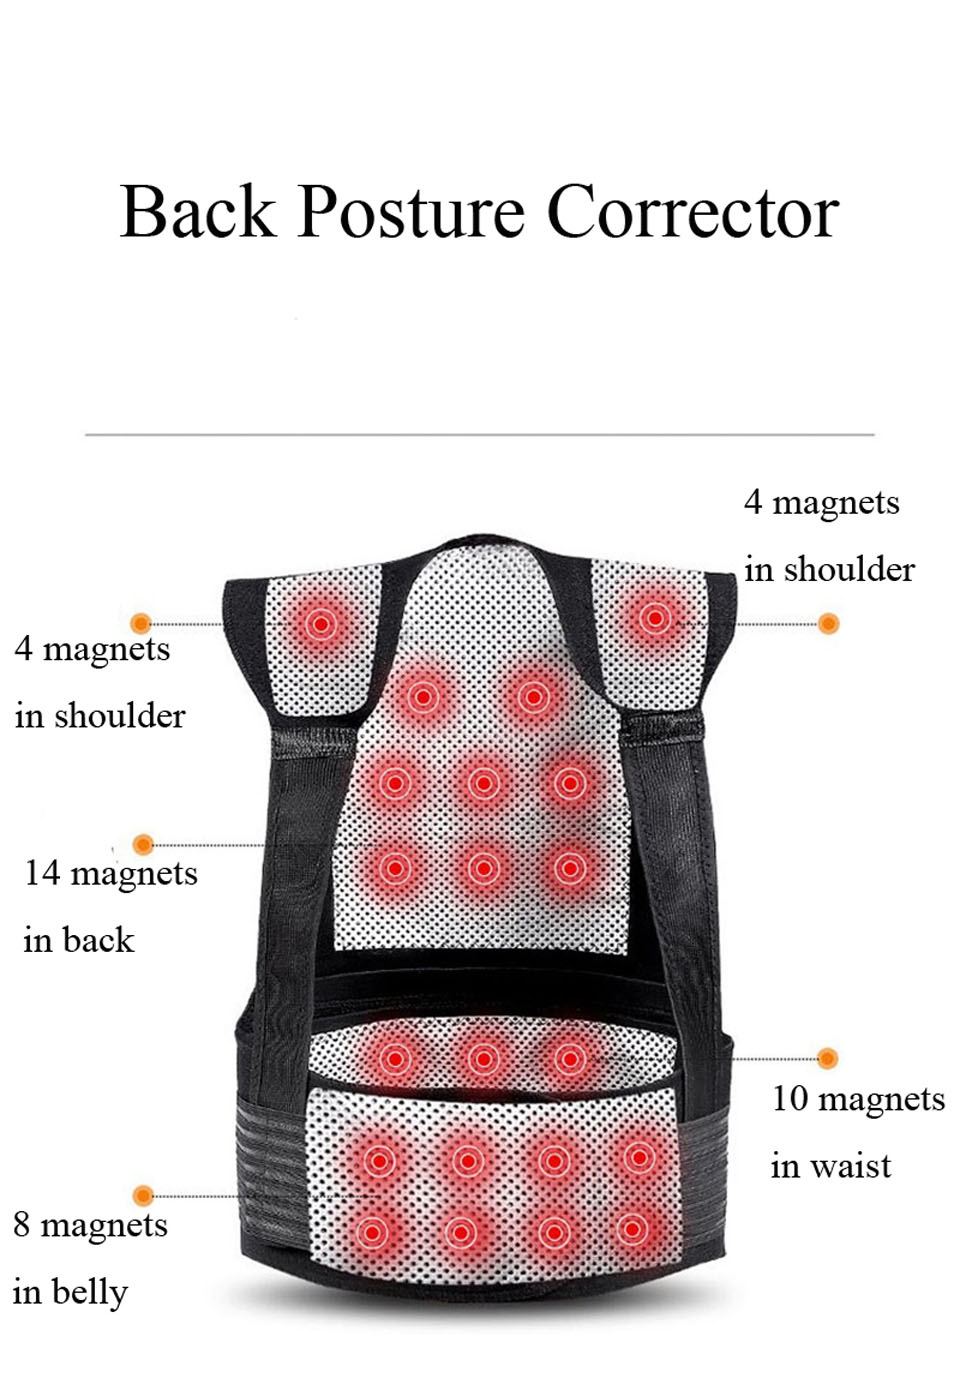 Tourmaline Self Heating Posture Corrector Belt with Nano Infrared Acupuncture Dot Matrix  to Support Spine and Shoulder Helps to Relieve Pain in Back and Joints 10